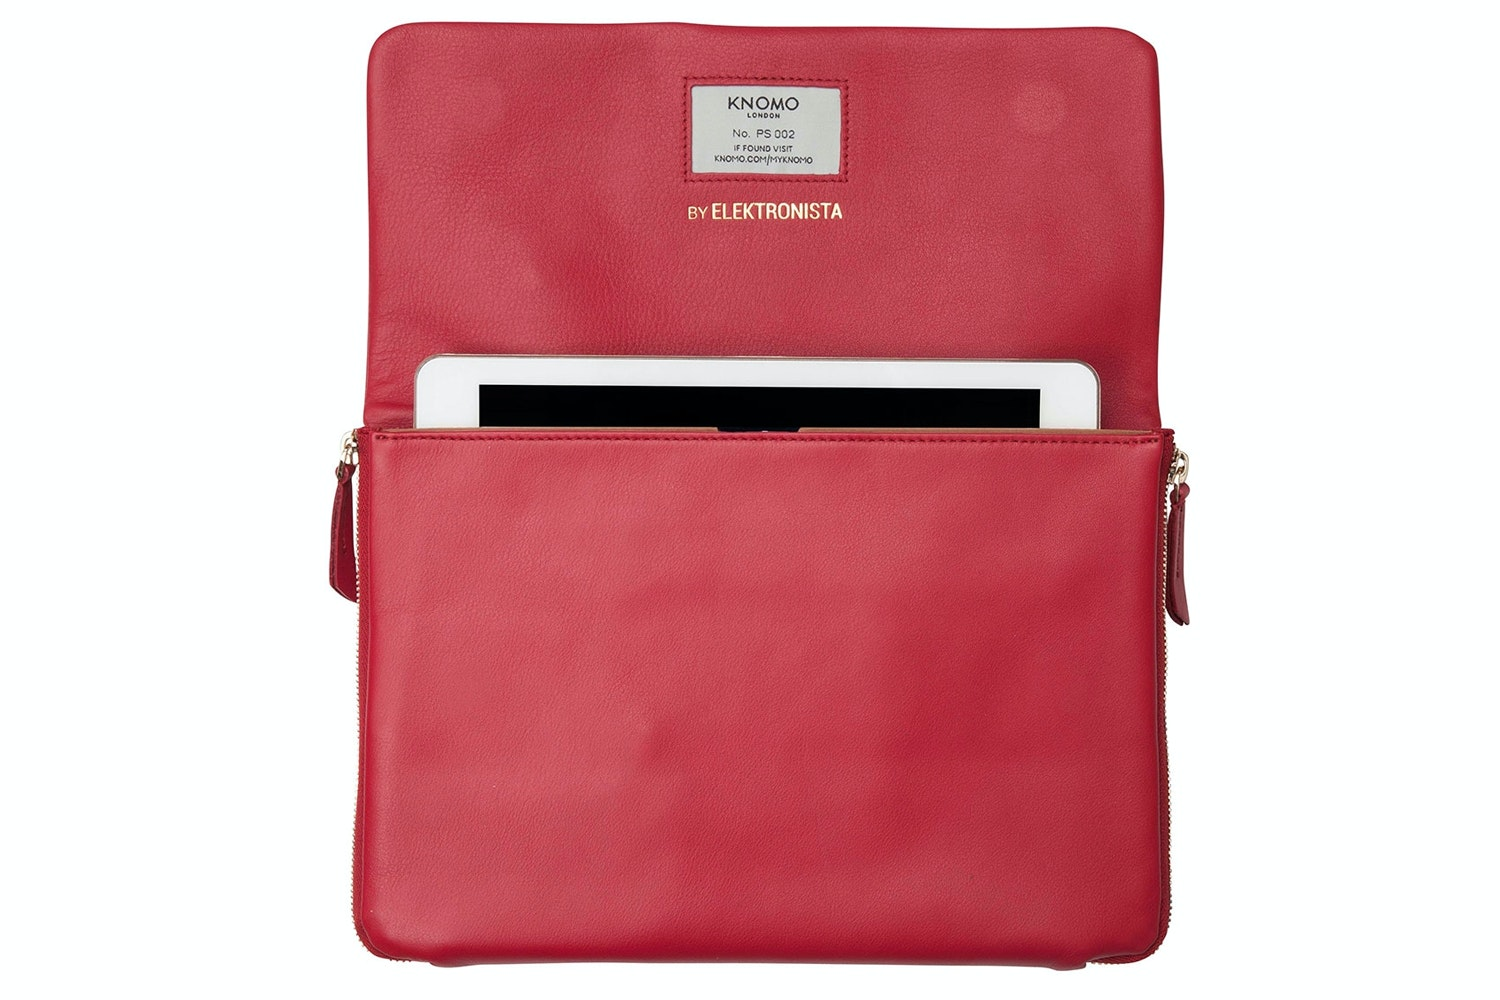 Knomo Elektronista Clutch Leather Bag 10"